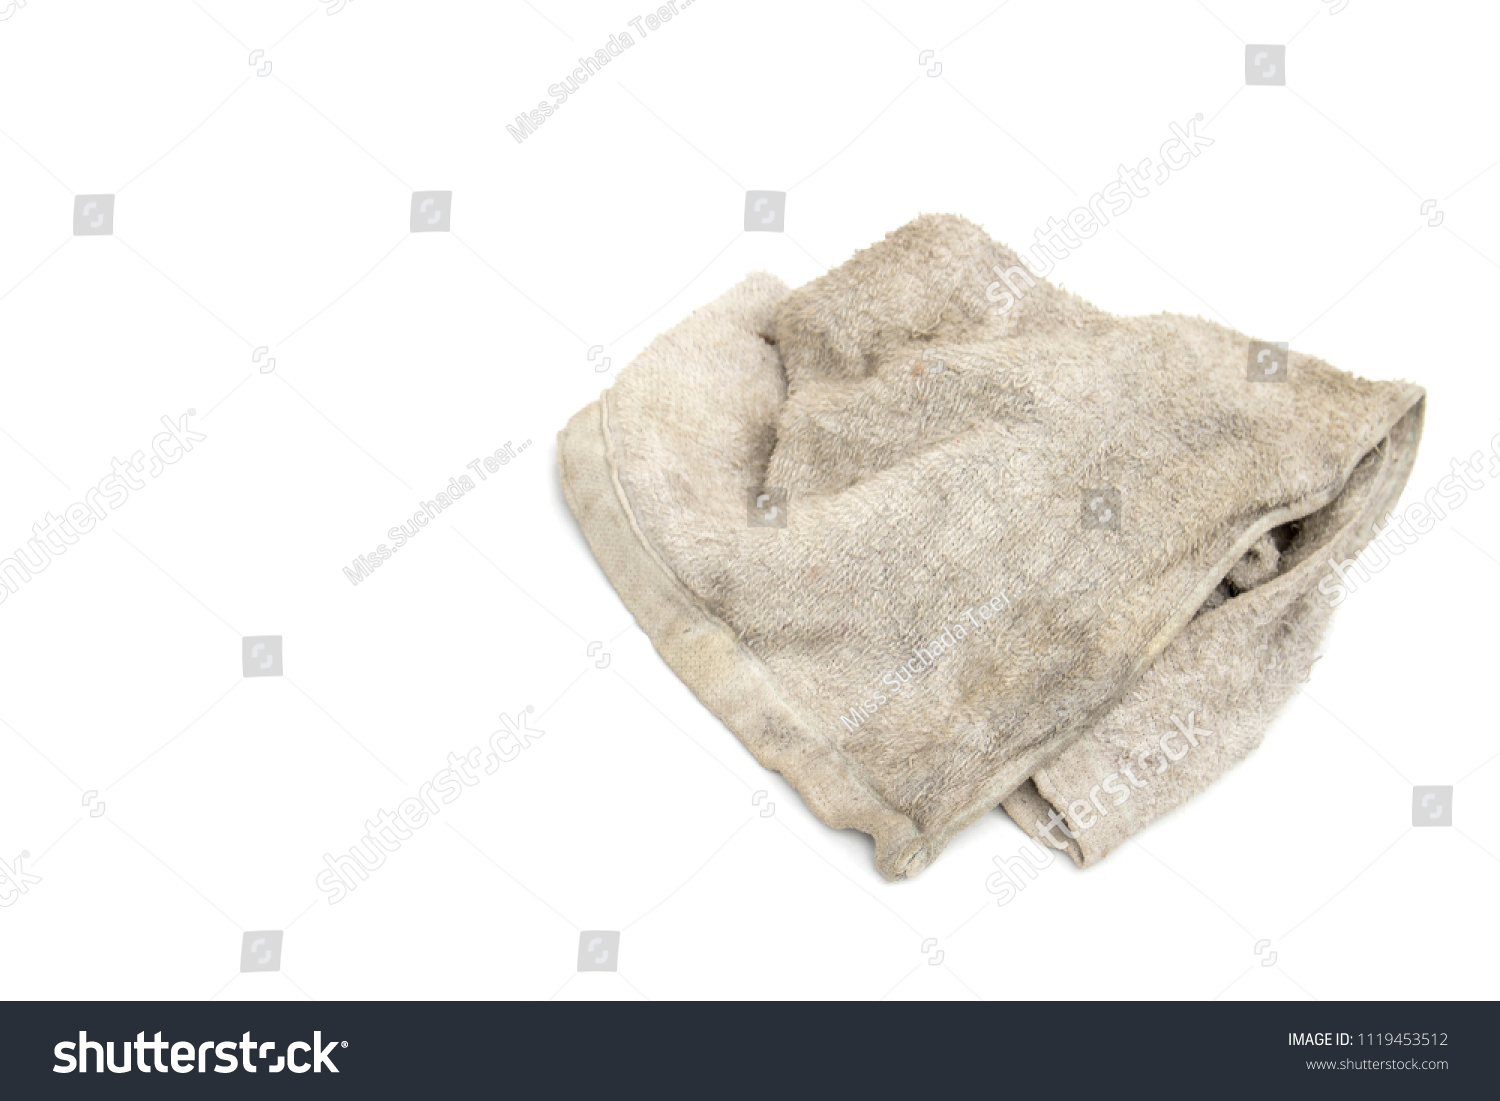 90661306e4ae9 Dirty Rag Isolated On White Background Stock Photo (Edit Now ...